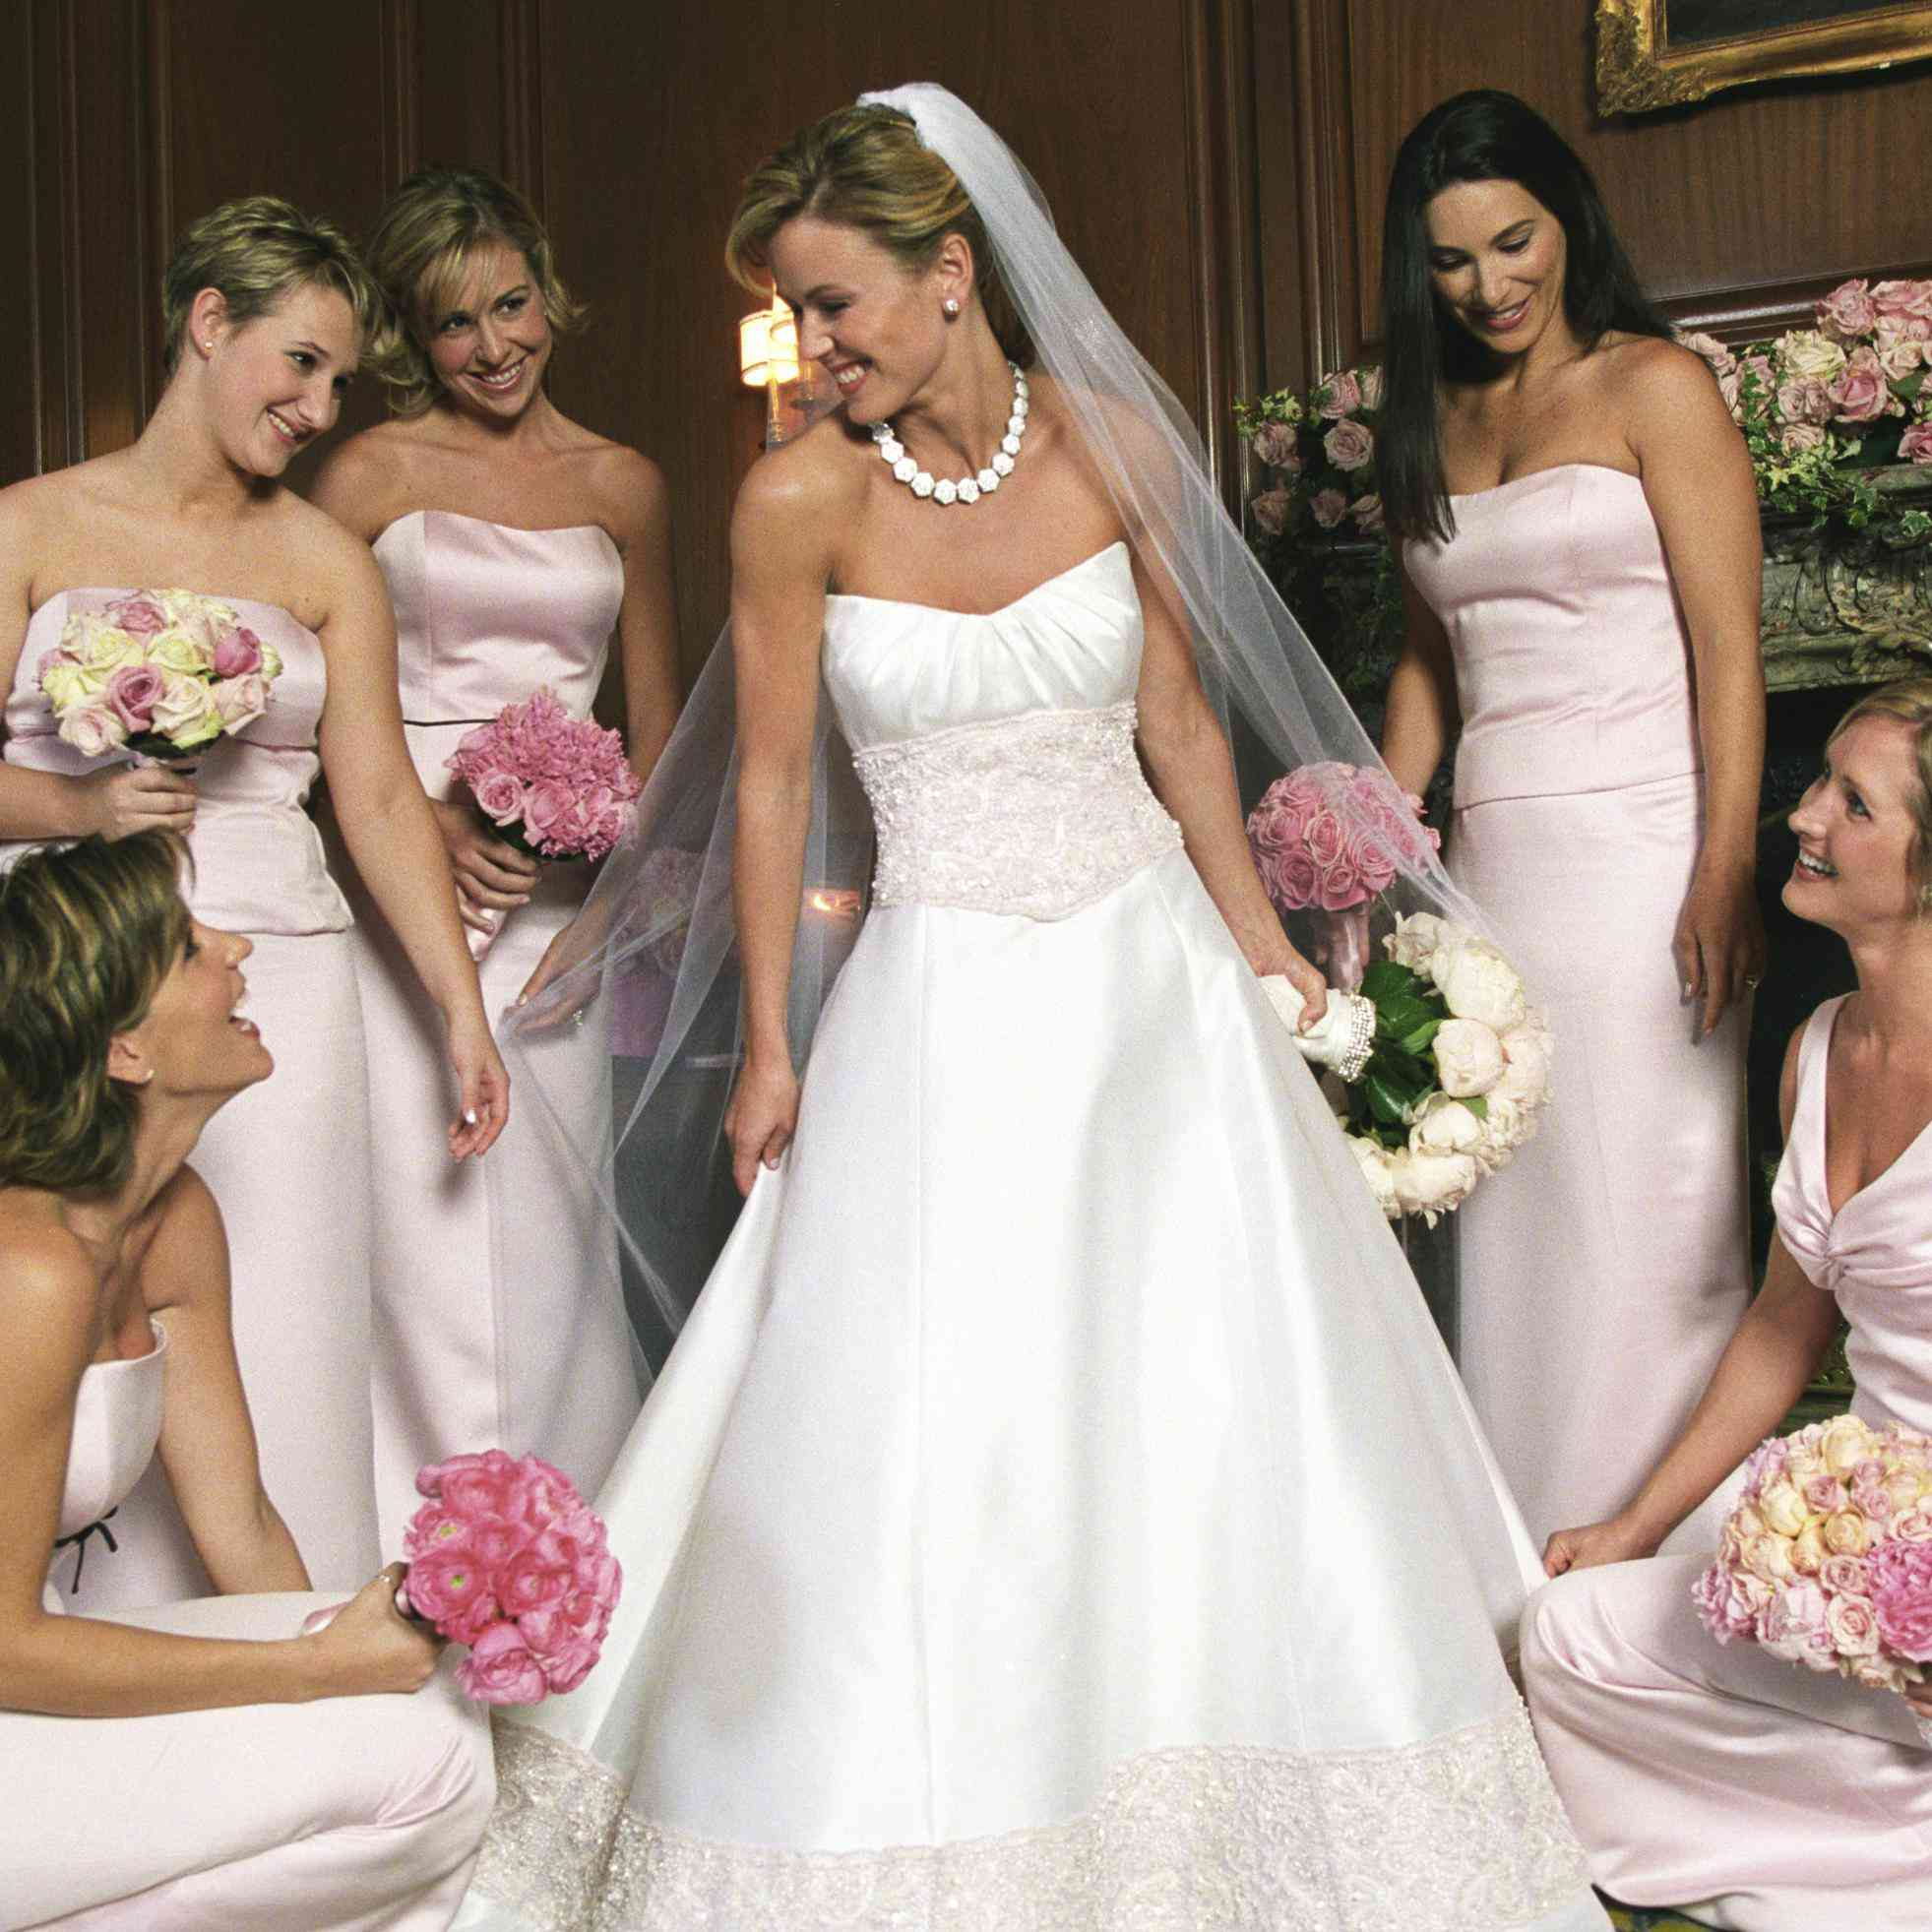 Carly And Evan Wedding.All The Bachelor Nation Wedding Dresses A Complete History